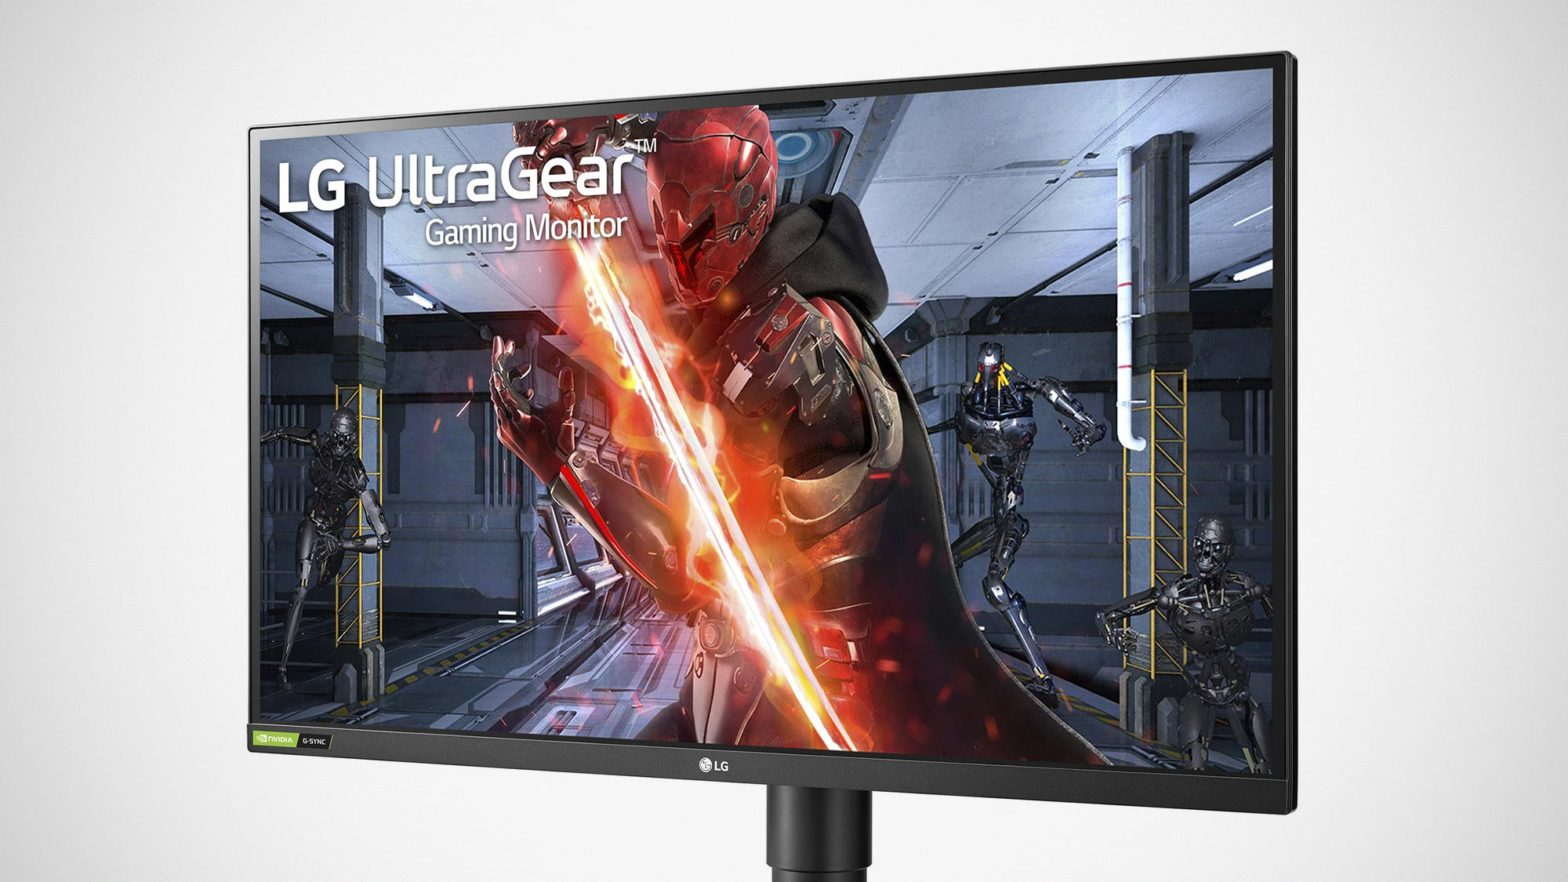 27-inch LG UltraGear 1ms GTG IPS Gaming Monitor